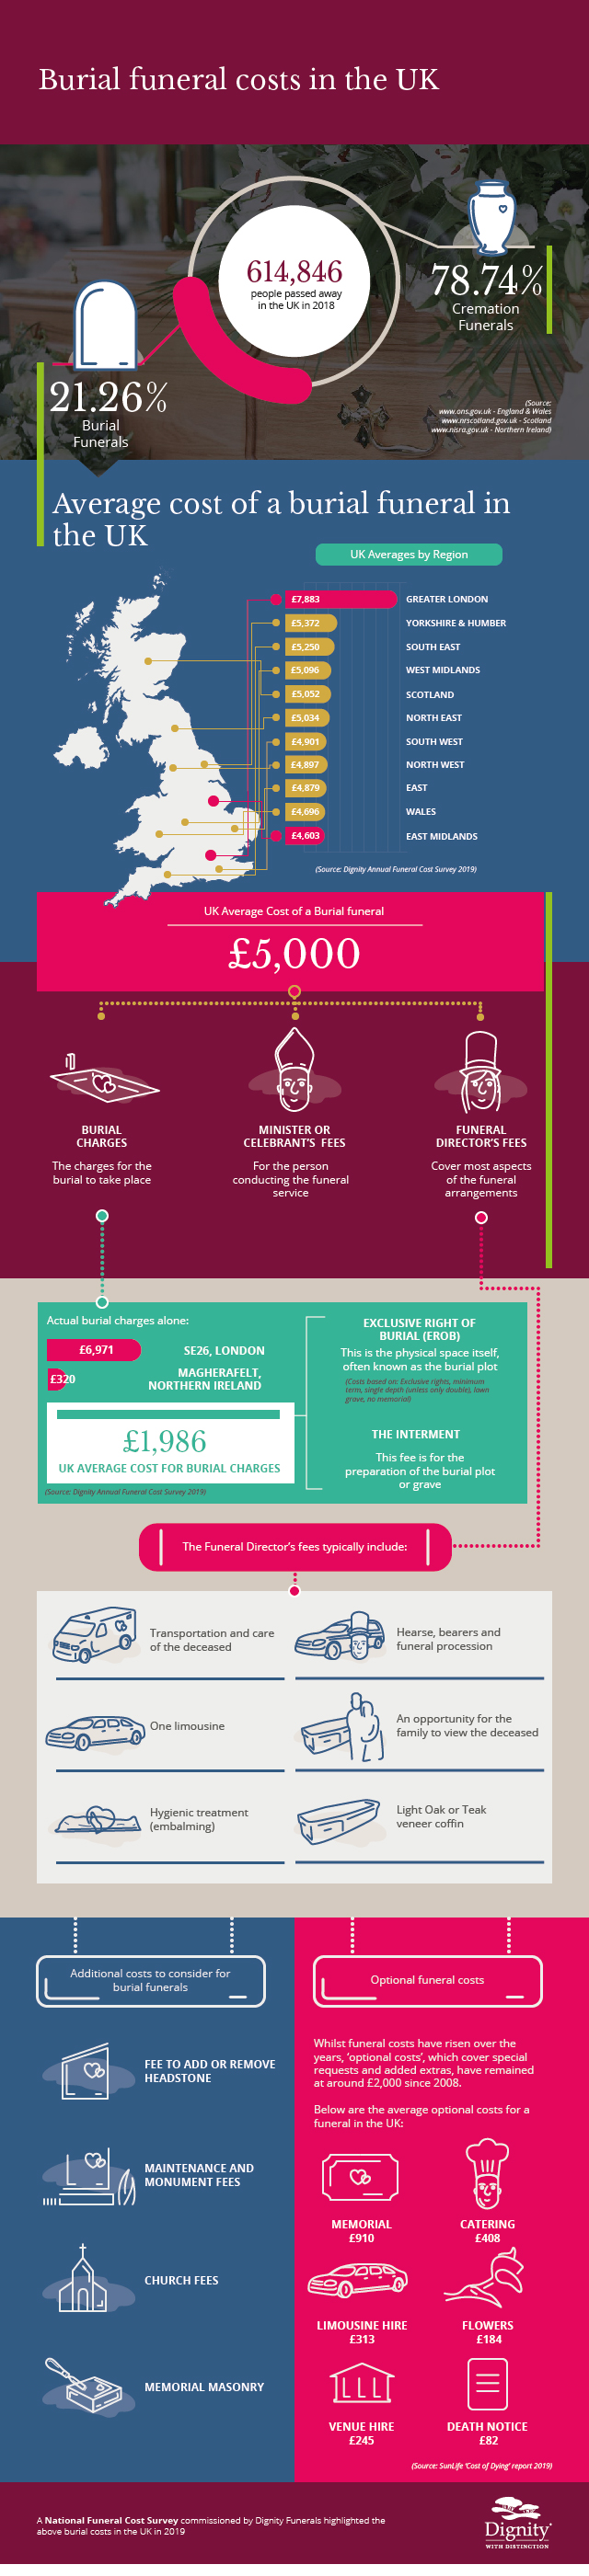 Burial costs infographic 2020 | Dignity Funerals